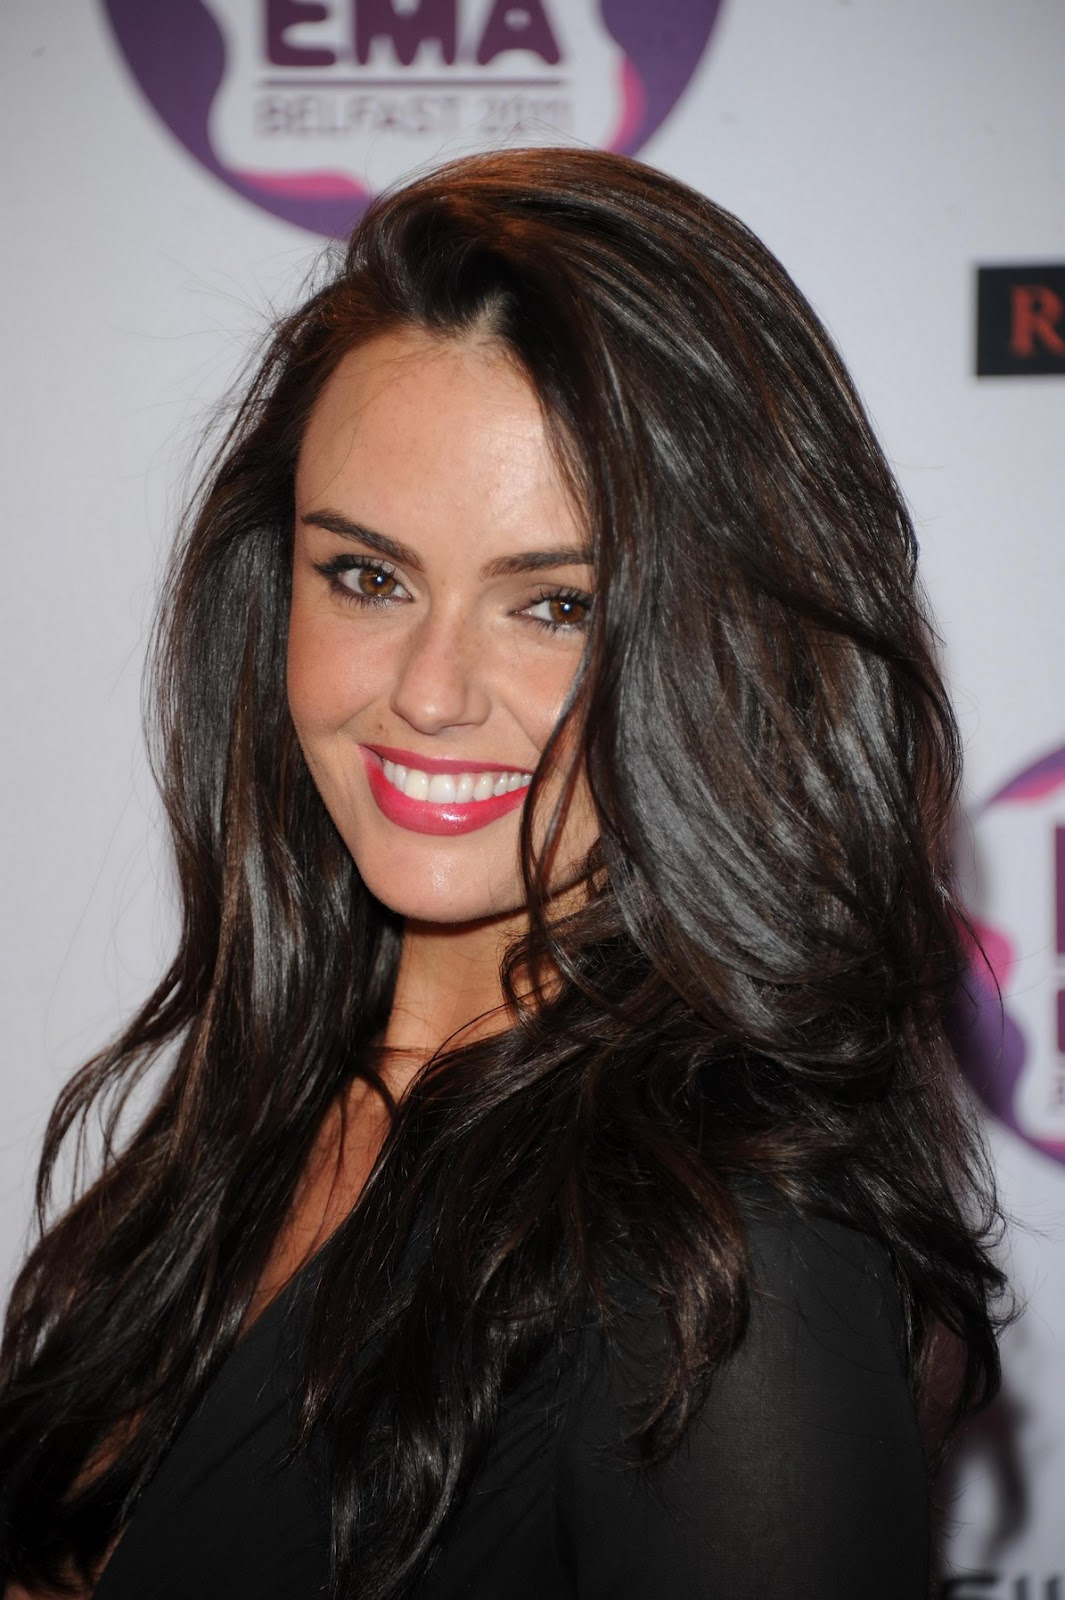 Jennifer Metcalfe (born 1983)